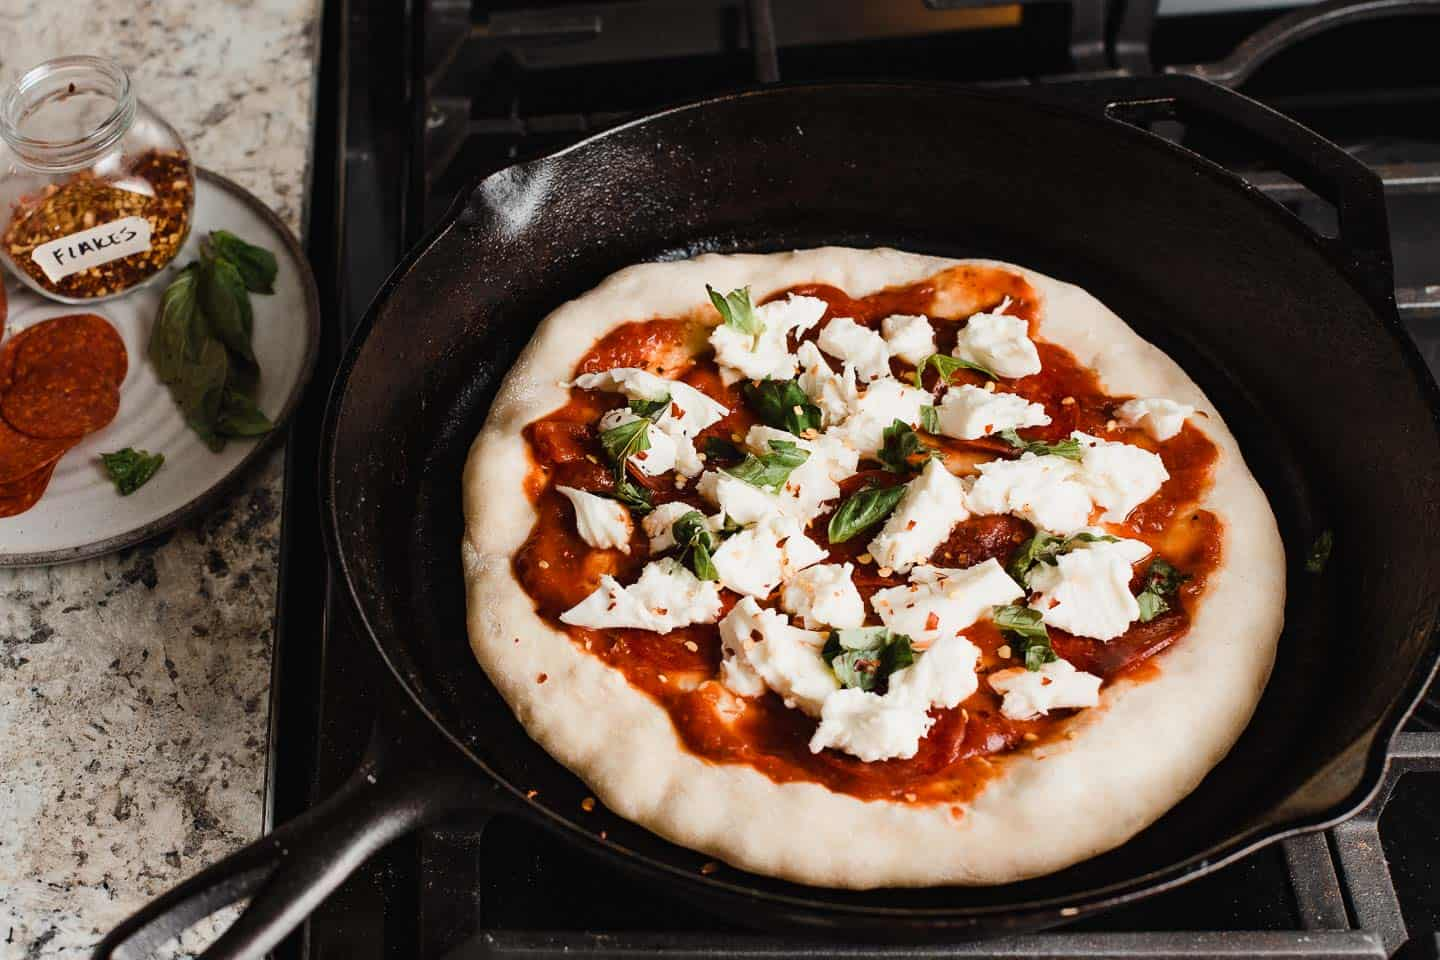 A cast iron skillet on the stove with pizza crust and toppings.